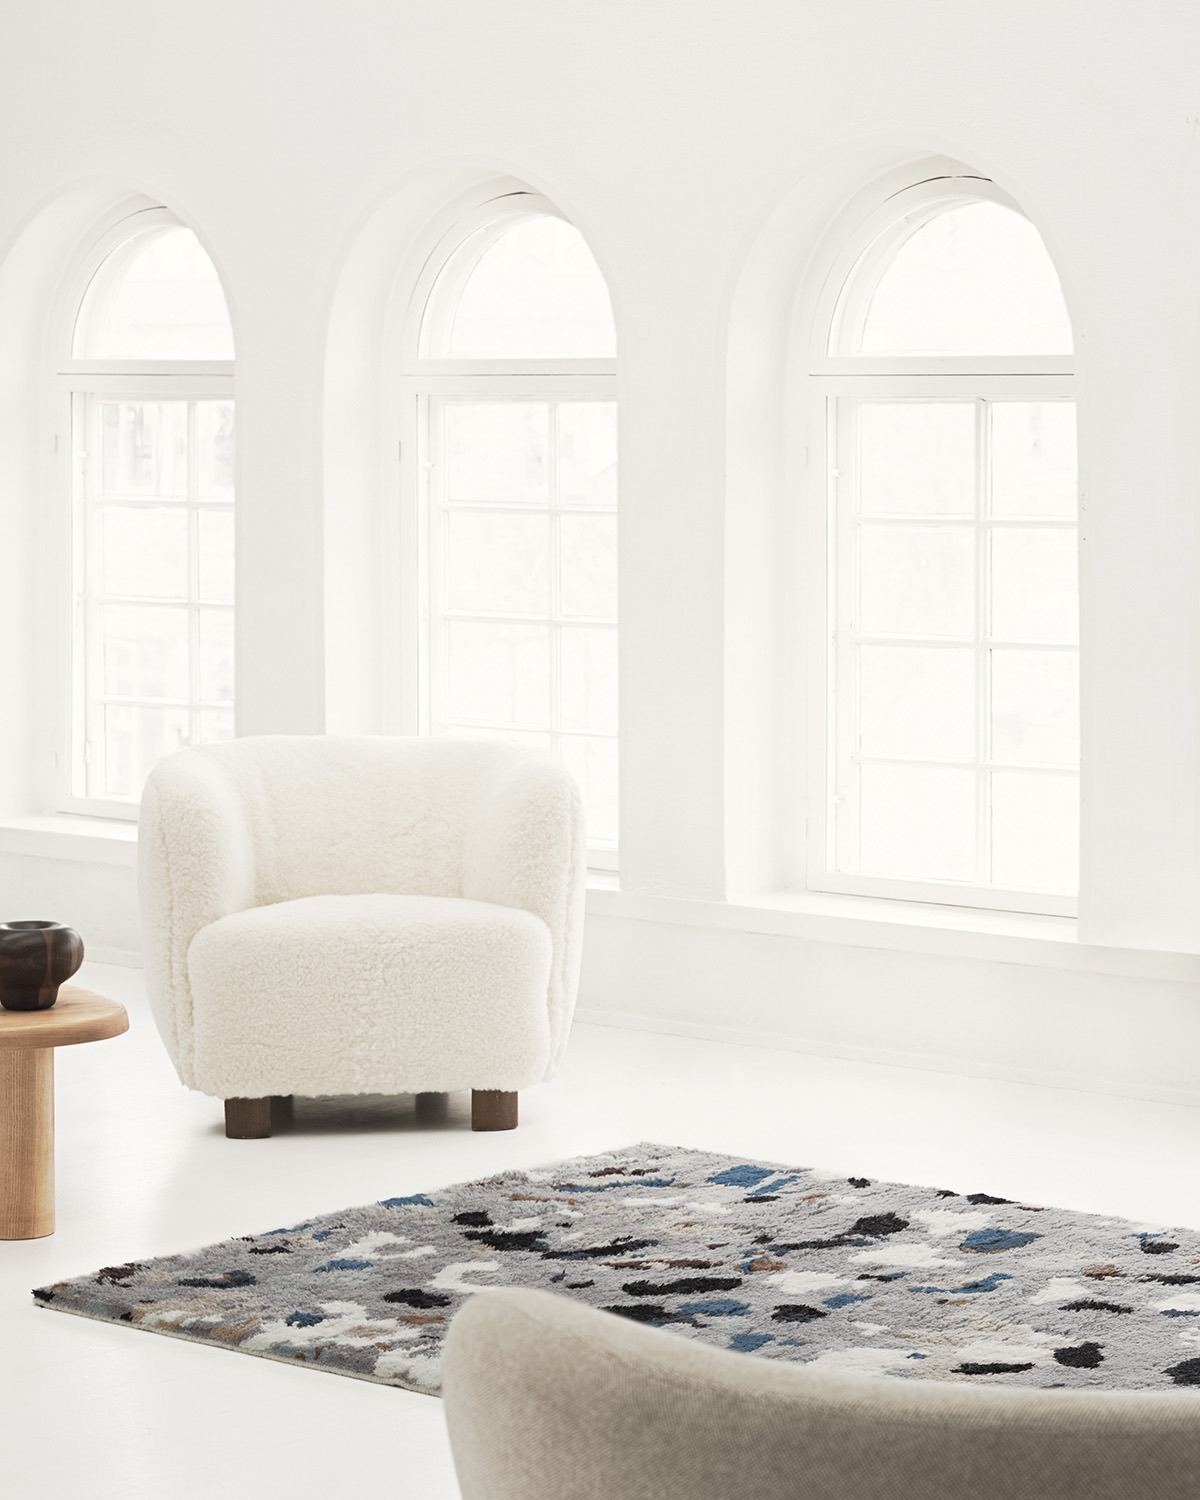 Shaggy Archipelago in the color Gray is displayed in a white, gallery-like setting with arched windows in the back.